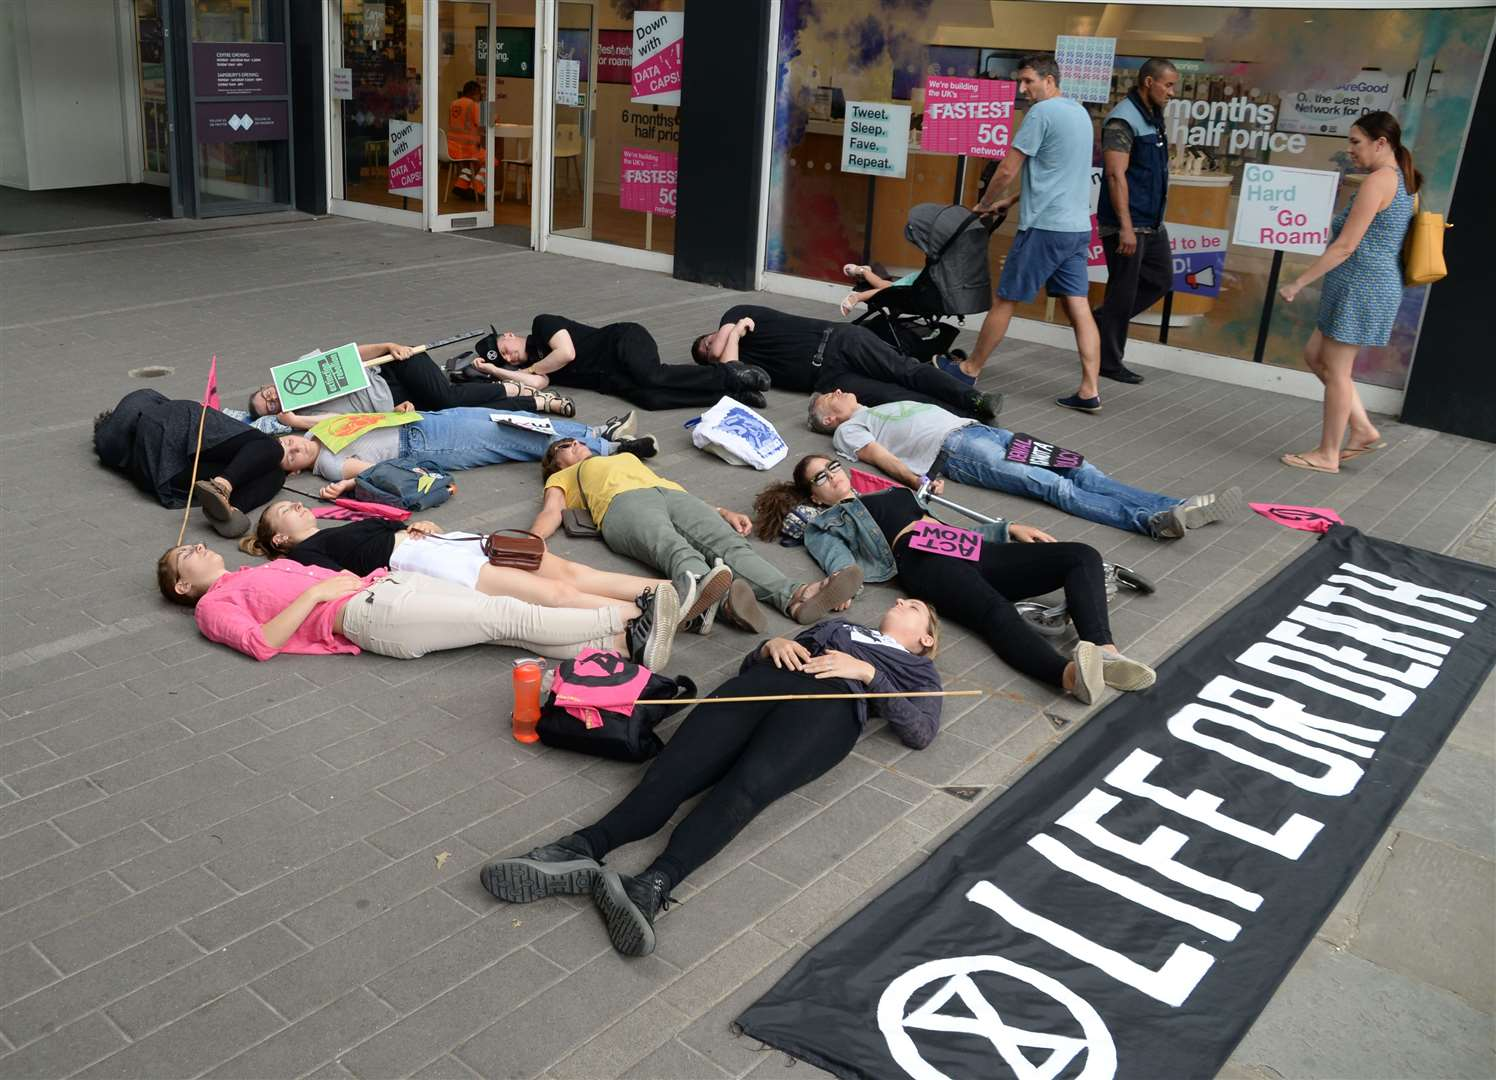 Extinction Rebellion Group take part in a 'Die-in' to publicise their cause. Picture: Vikki Lince